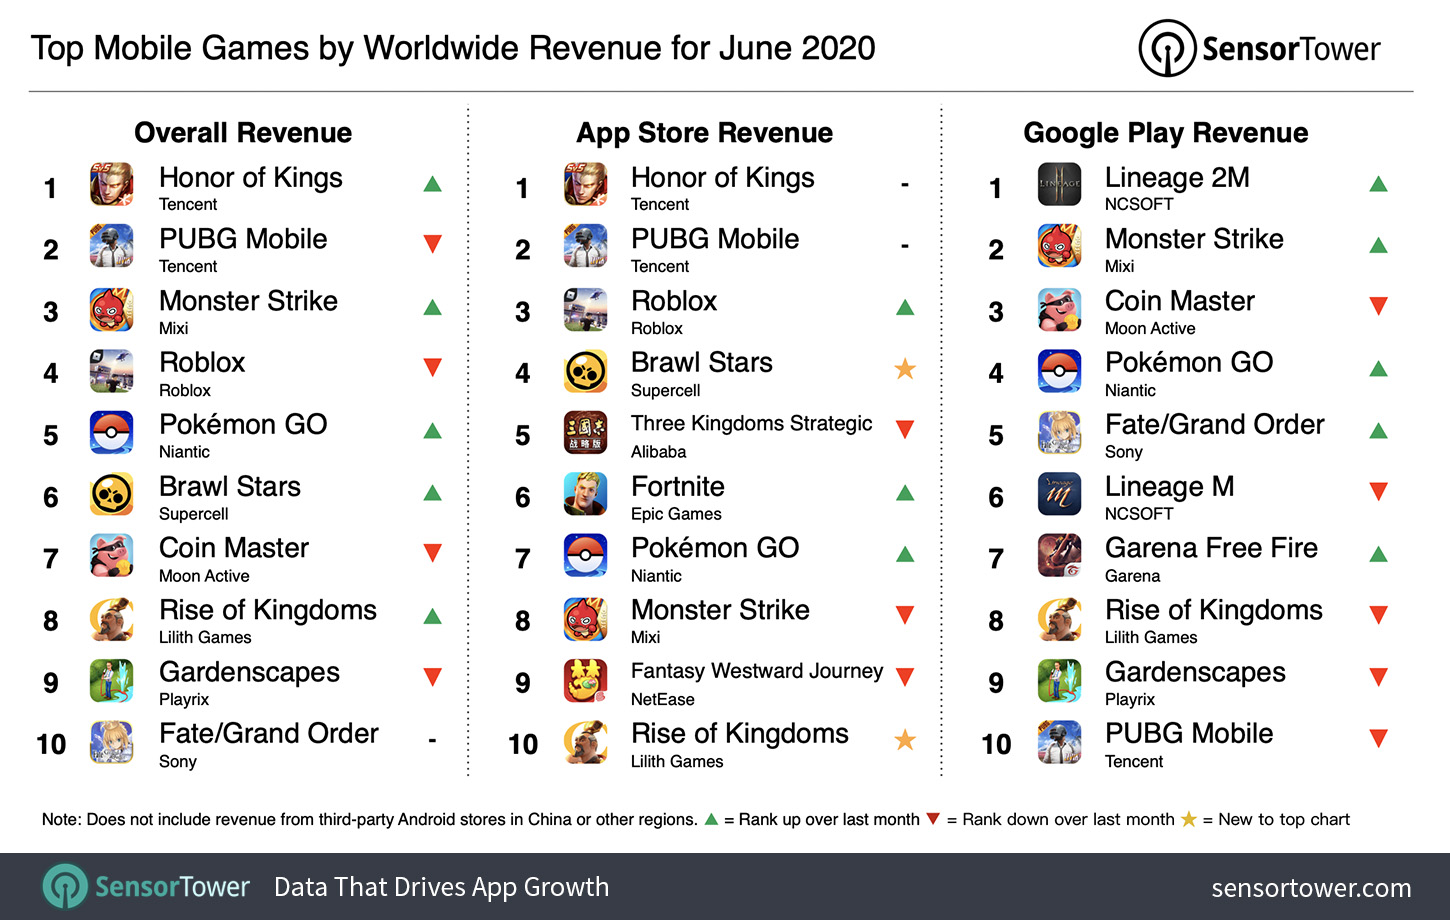 Top Mobile Games by Worldwide Revenue for June 2020